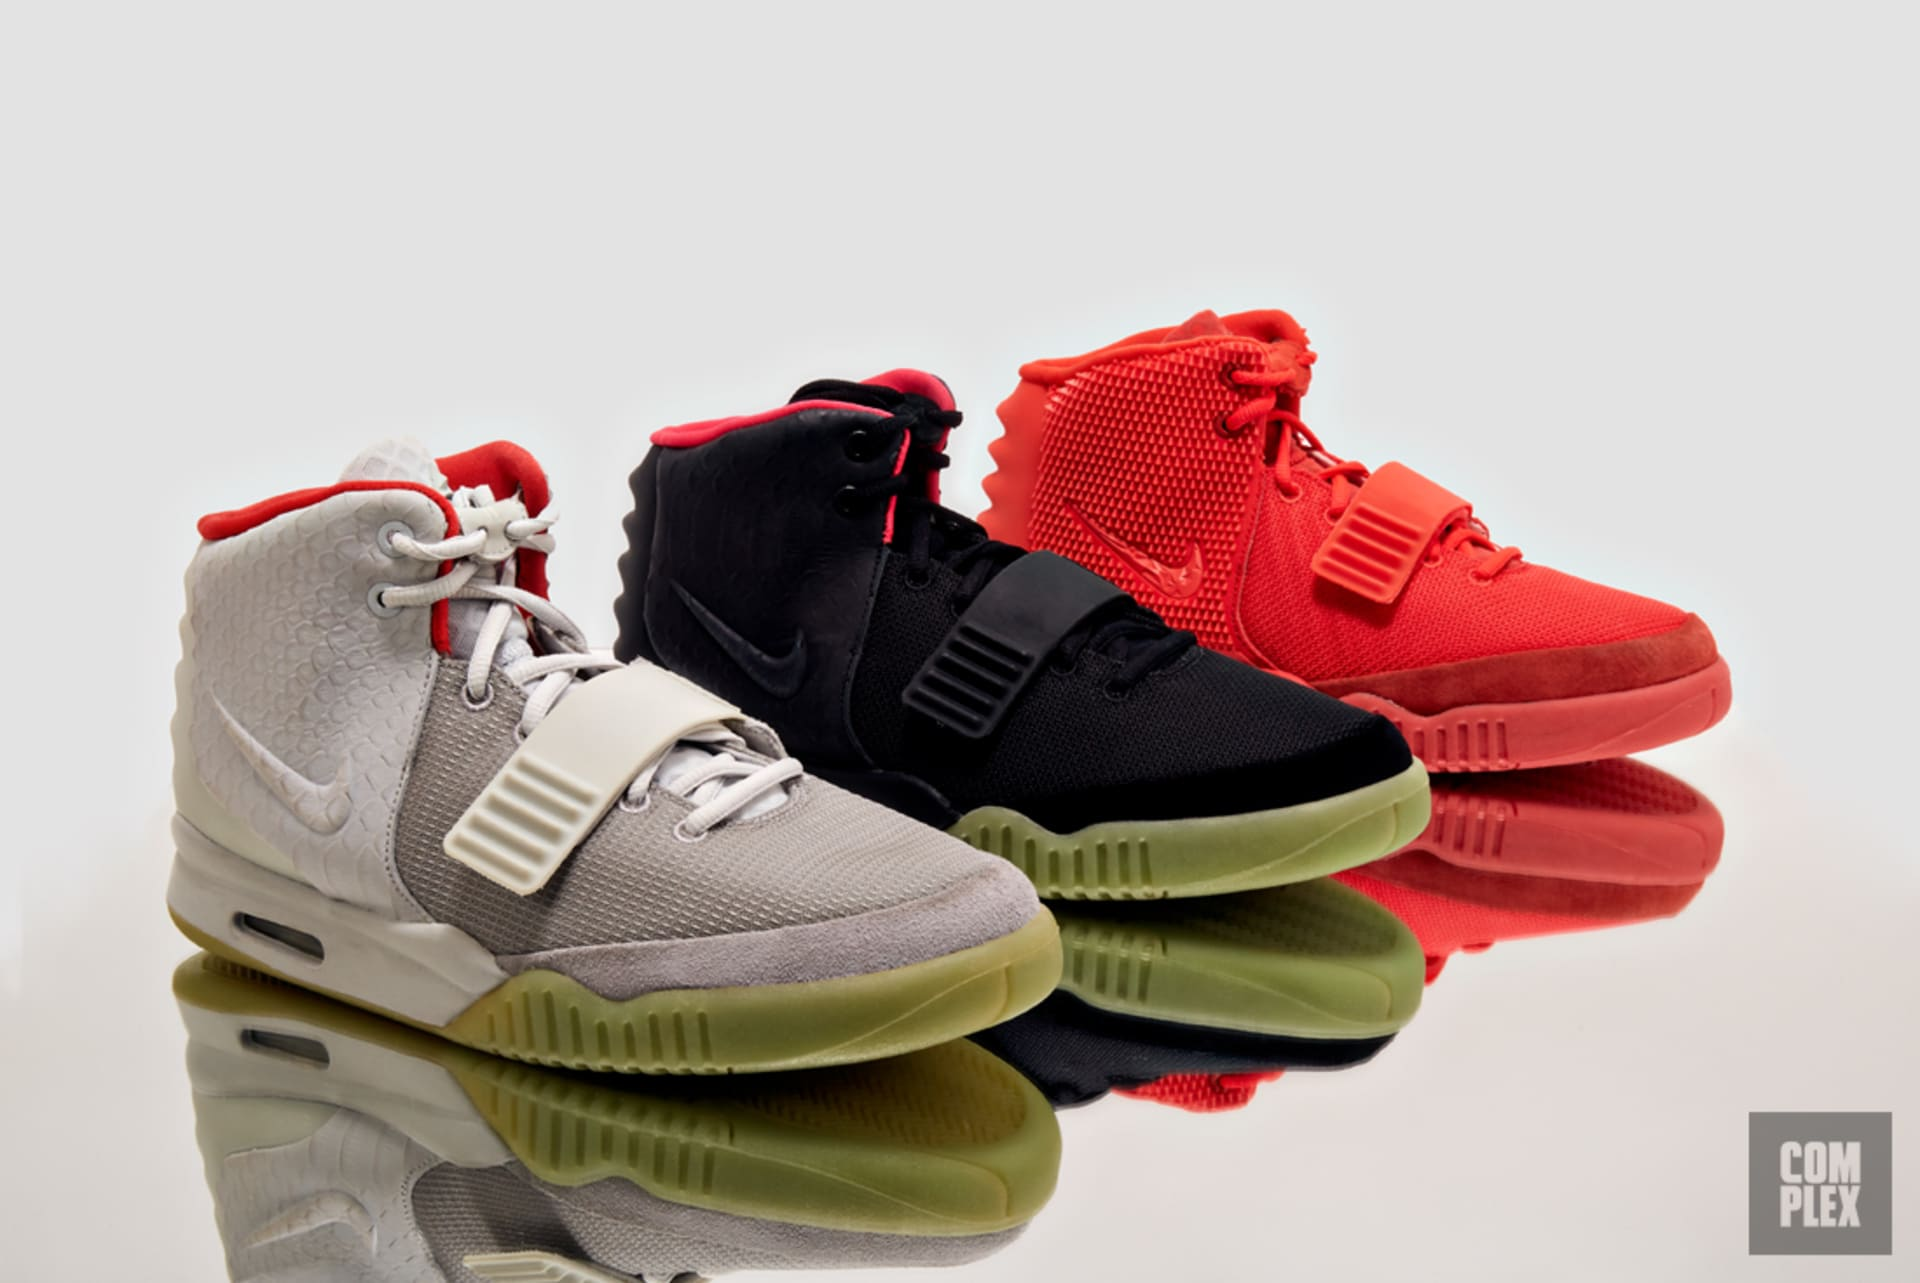 Yeezy Success The Kanye To Led Air How West's And 2 Greatest xnzwO